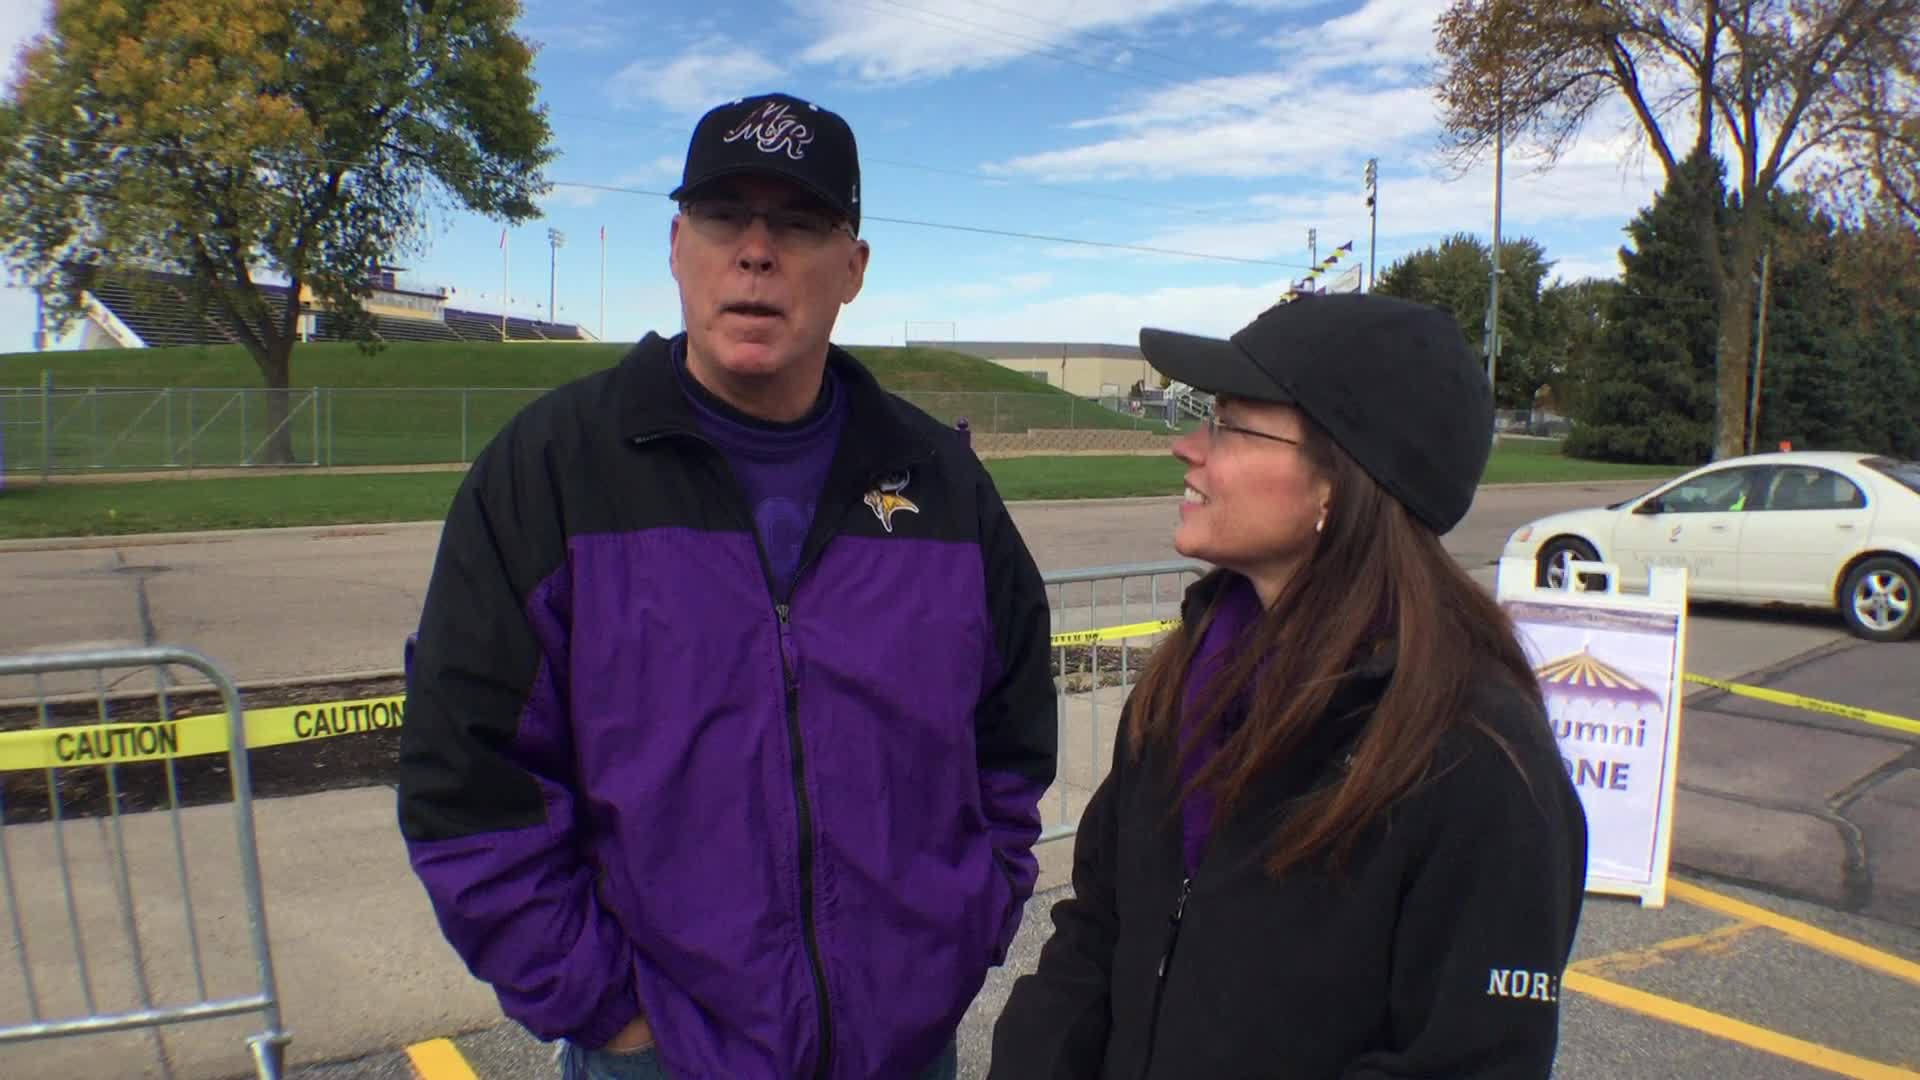 Jean Noren and Gary Noren, Mankato, MN - Homecoming 2016 at Minnesota State University, Mankato